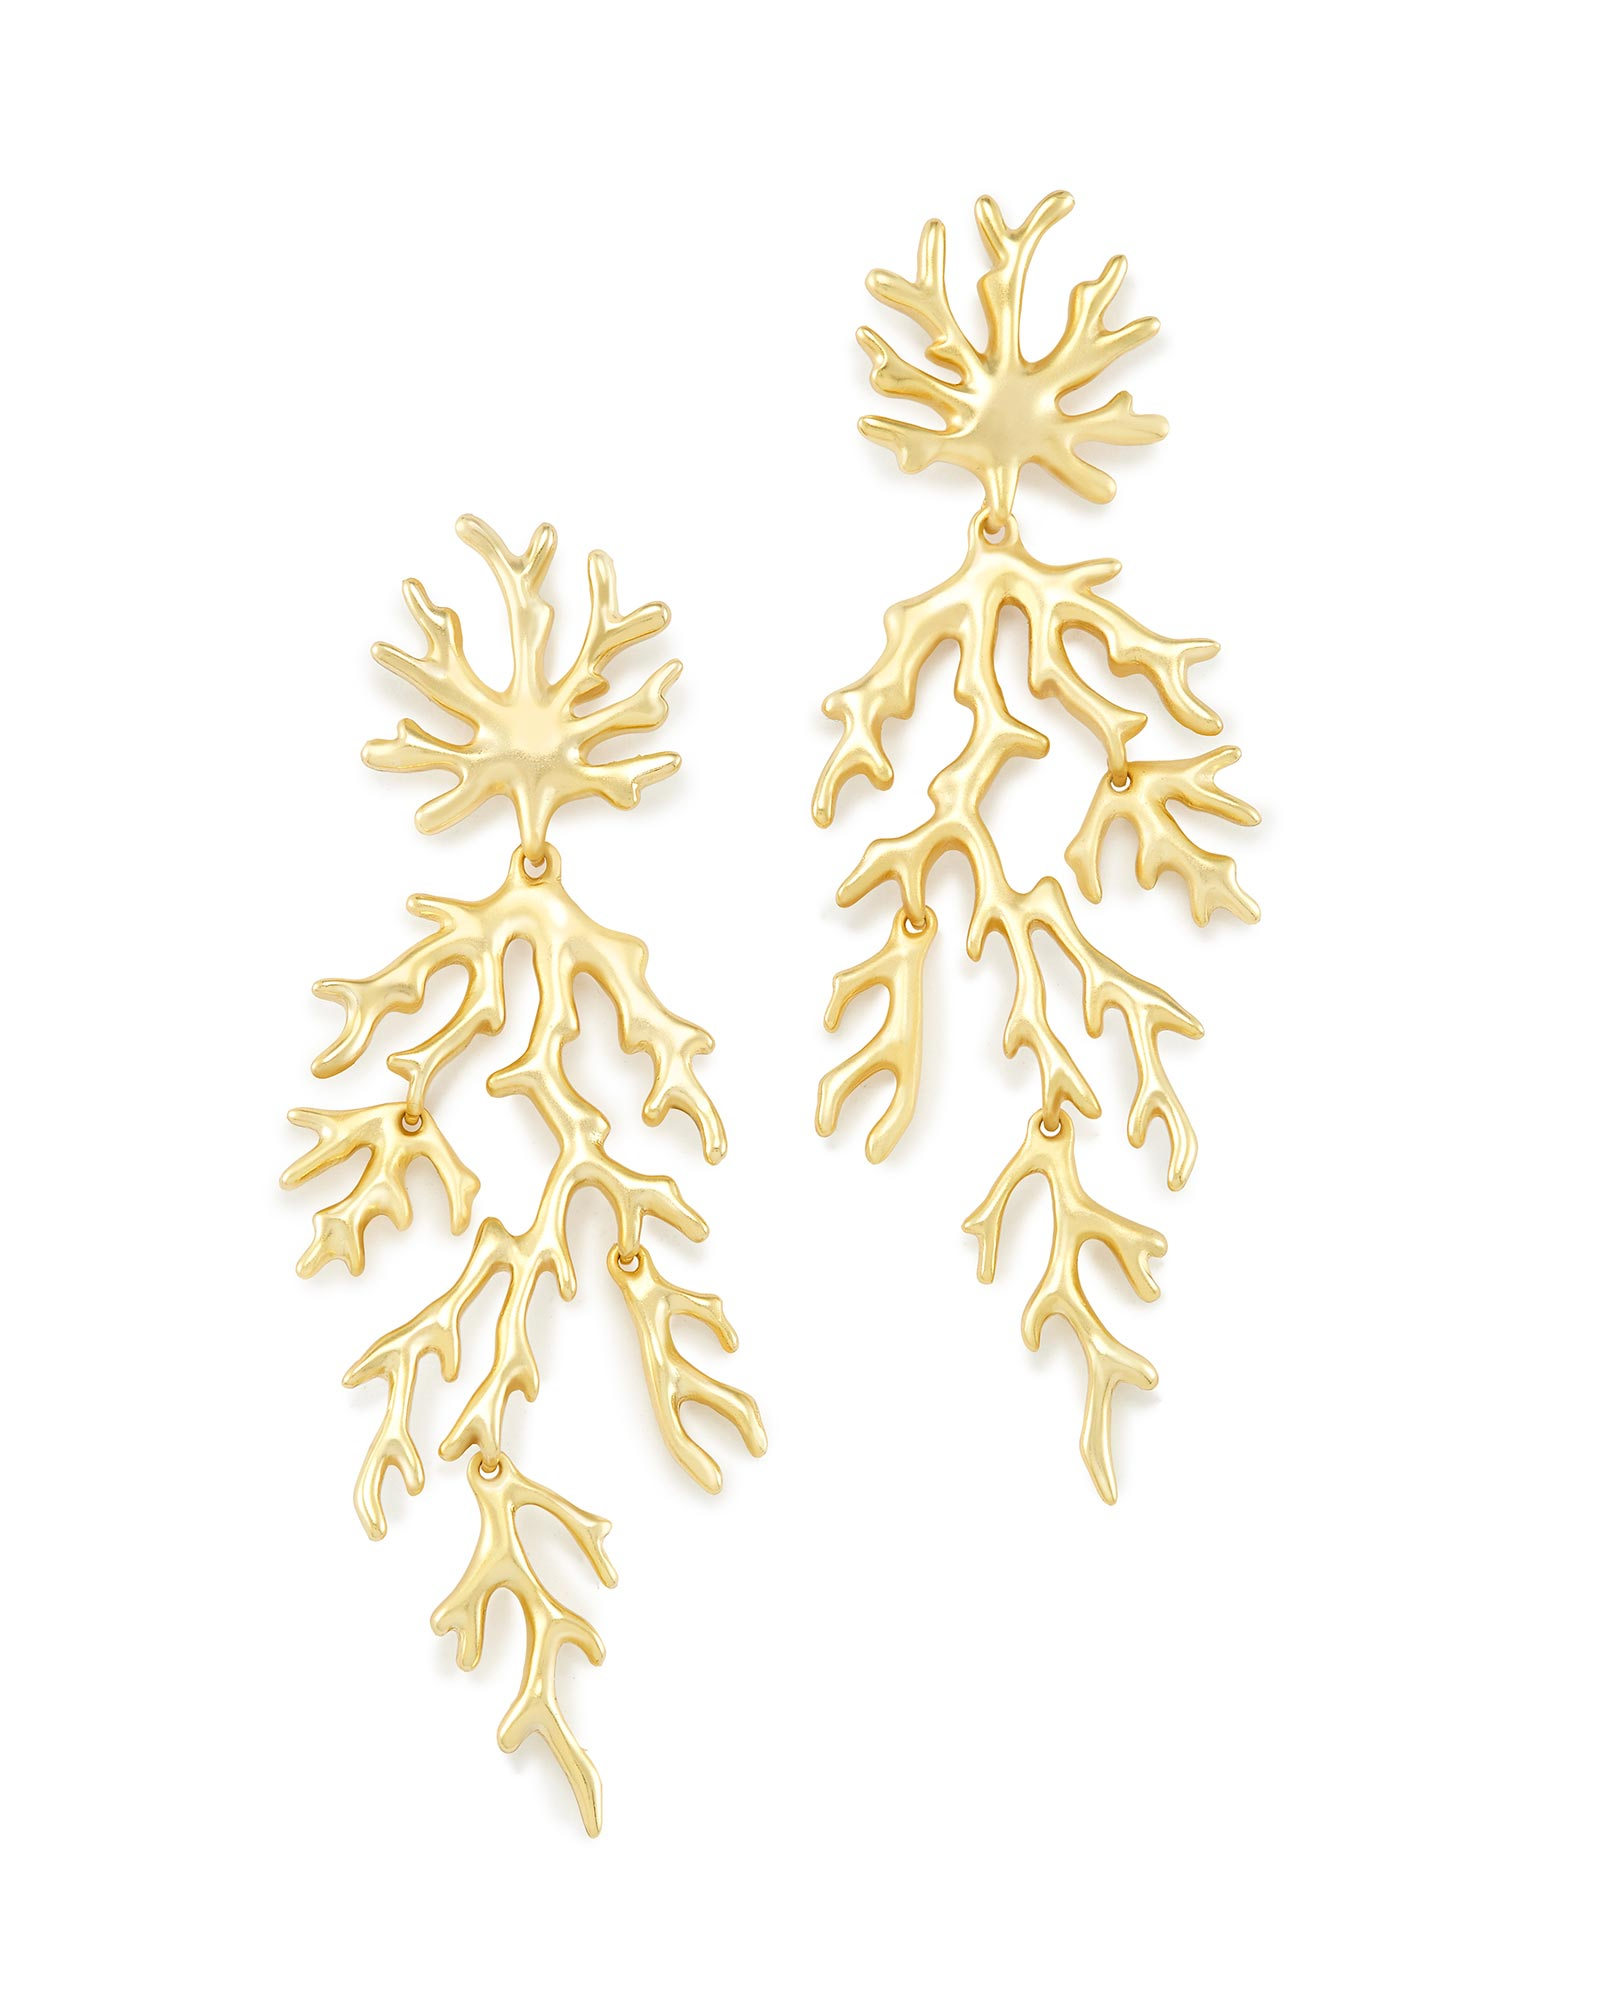 Aviana Statement Earrings